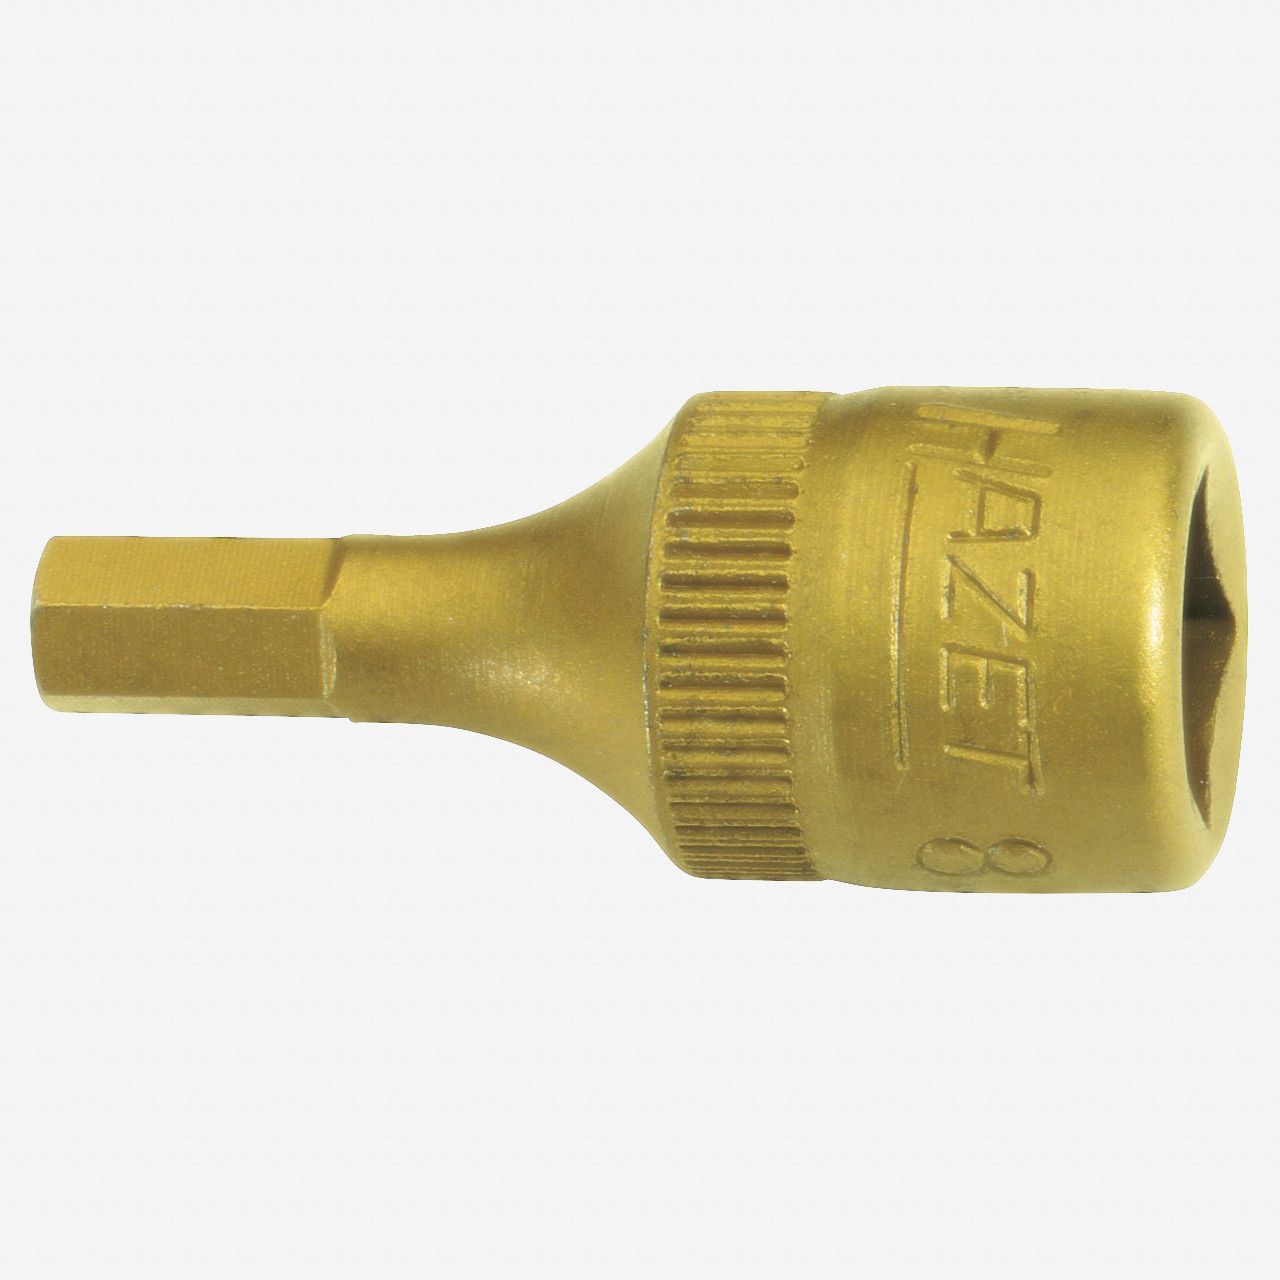 "Hazet 8501-5 5mm Hex TiN 1/4"" Socket - KC Tool"